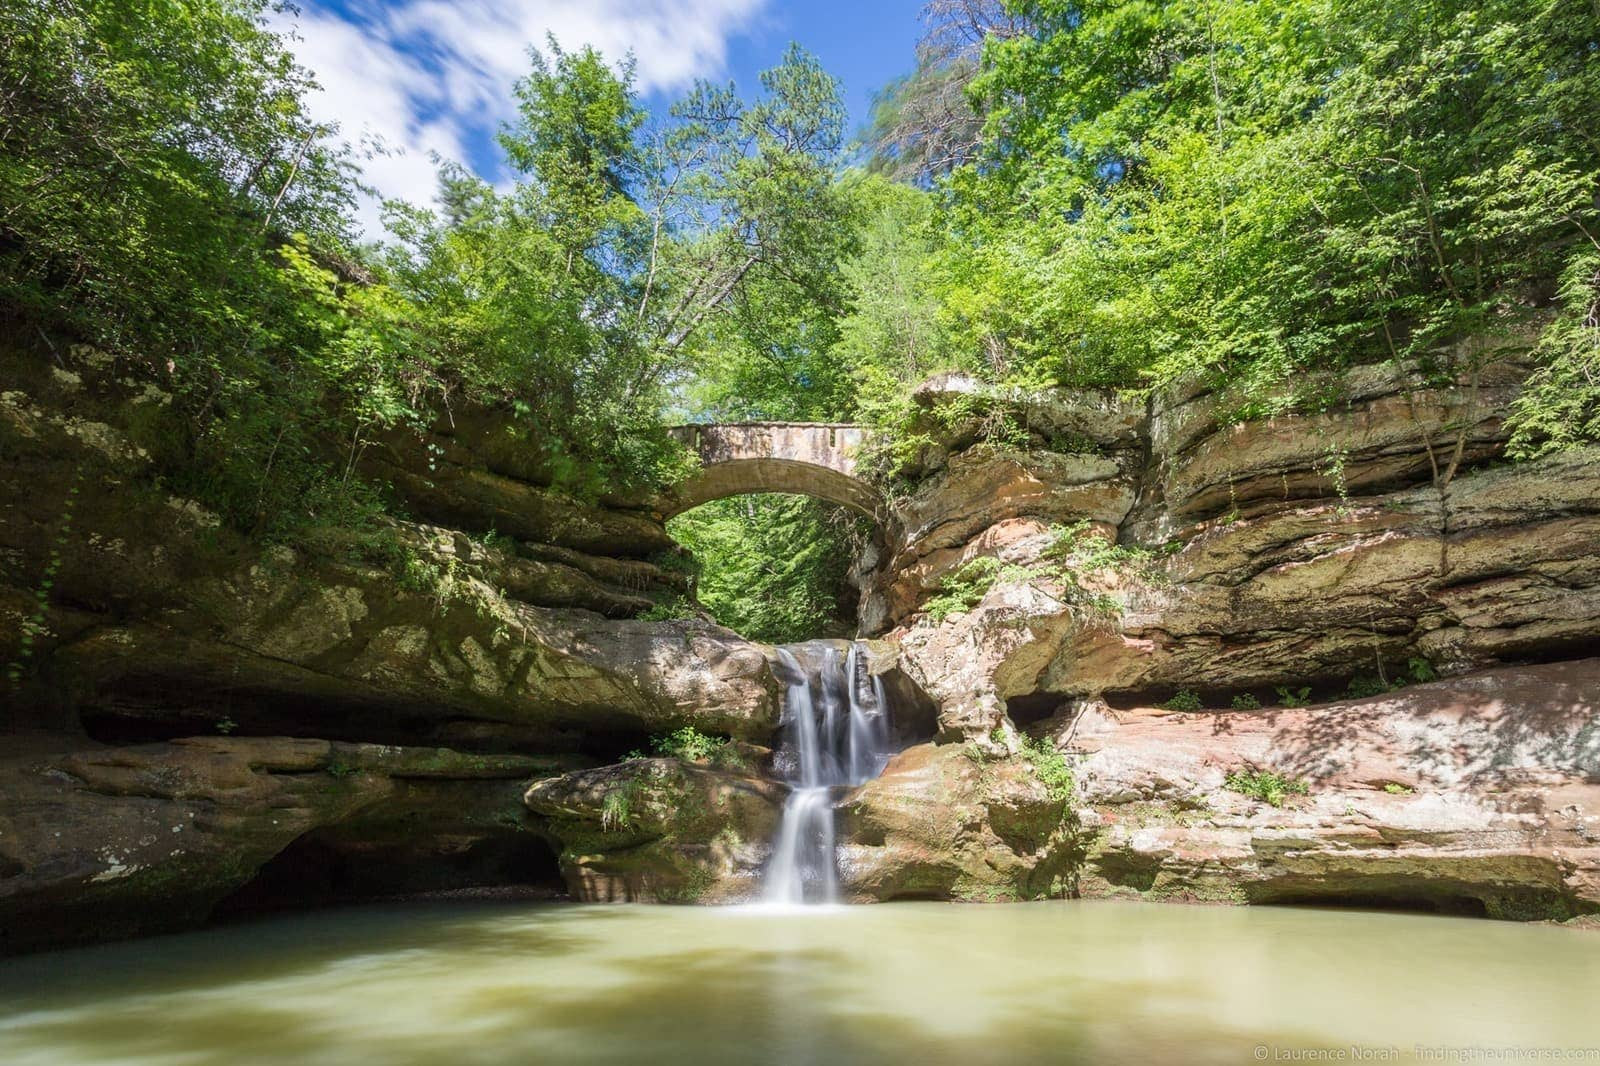 The Best Waterfalls in Ohio: A Photography Location Guide - Finding Maps Of Trails In Ohio State on ohio indian mound maps, ohio mine maps, ohio historic maps, ohio road maps, ohio bike trails, ohio home, ohio gold maps, oklahoma department of transportation maps, ohio metroparks map, ohio tow path maps, ohio atv trails, ohio canal towpath map, ohio hunting maps, ohio to erie trail, ohio quadrangle maps, ohio school maps, ohio city maps, ohio walking maps, ohio lake maps,